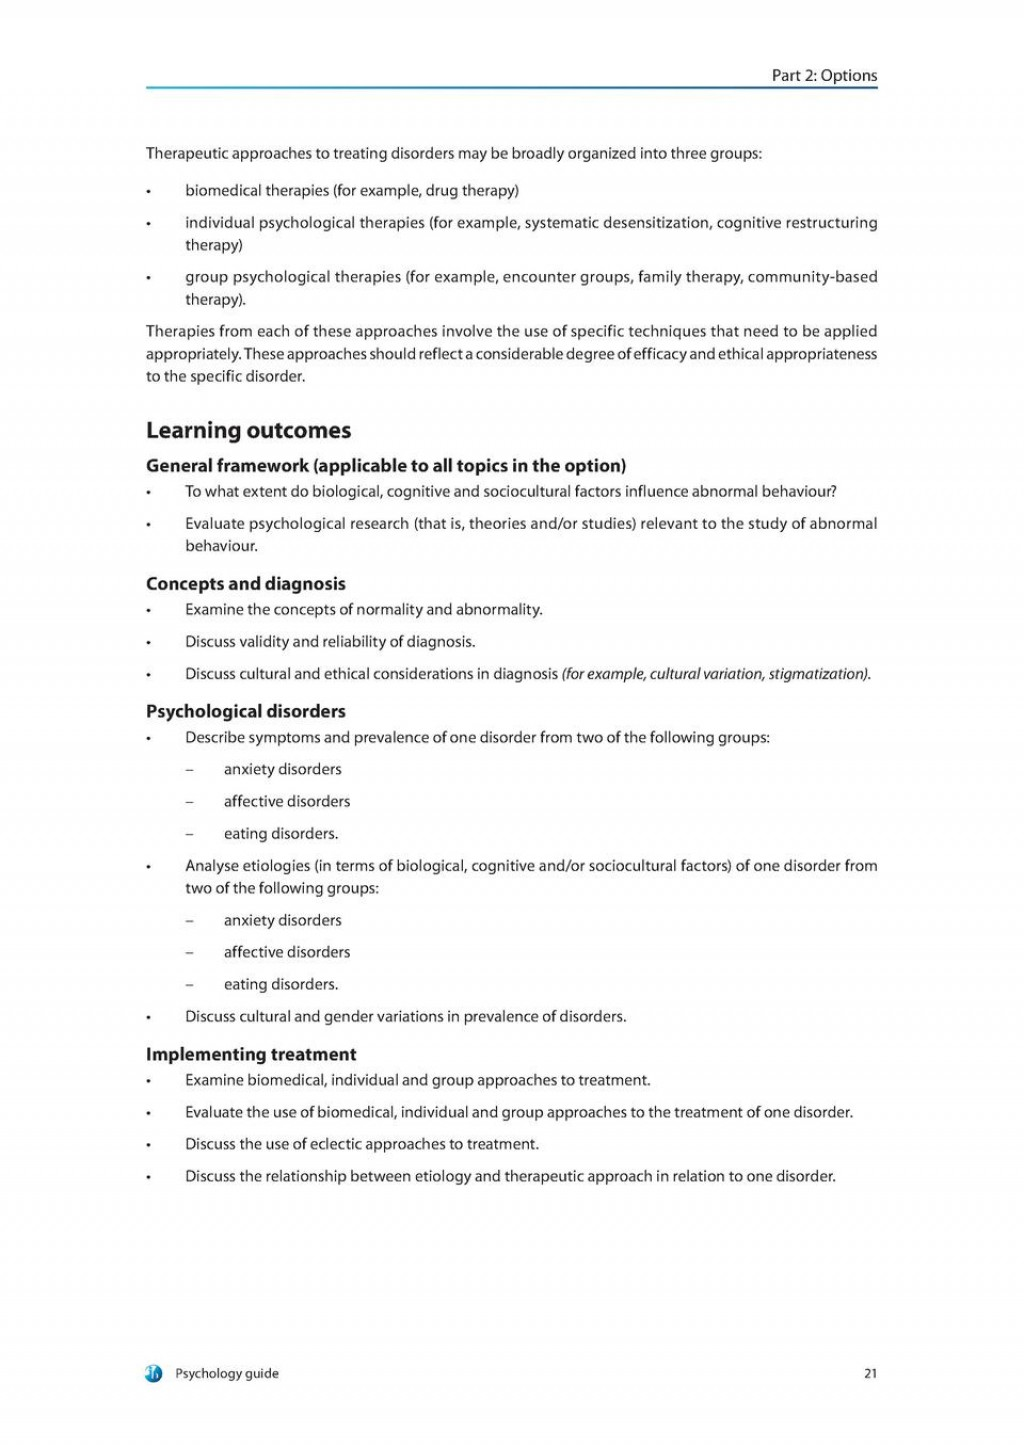 025 Abnormal Psychology Topics For Research Paper Vi71lfmq Unique Large